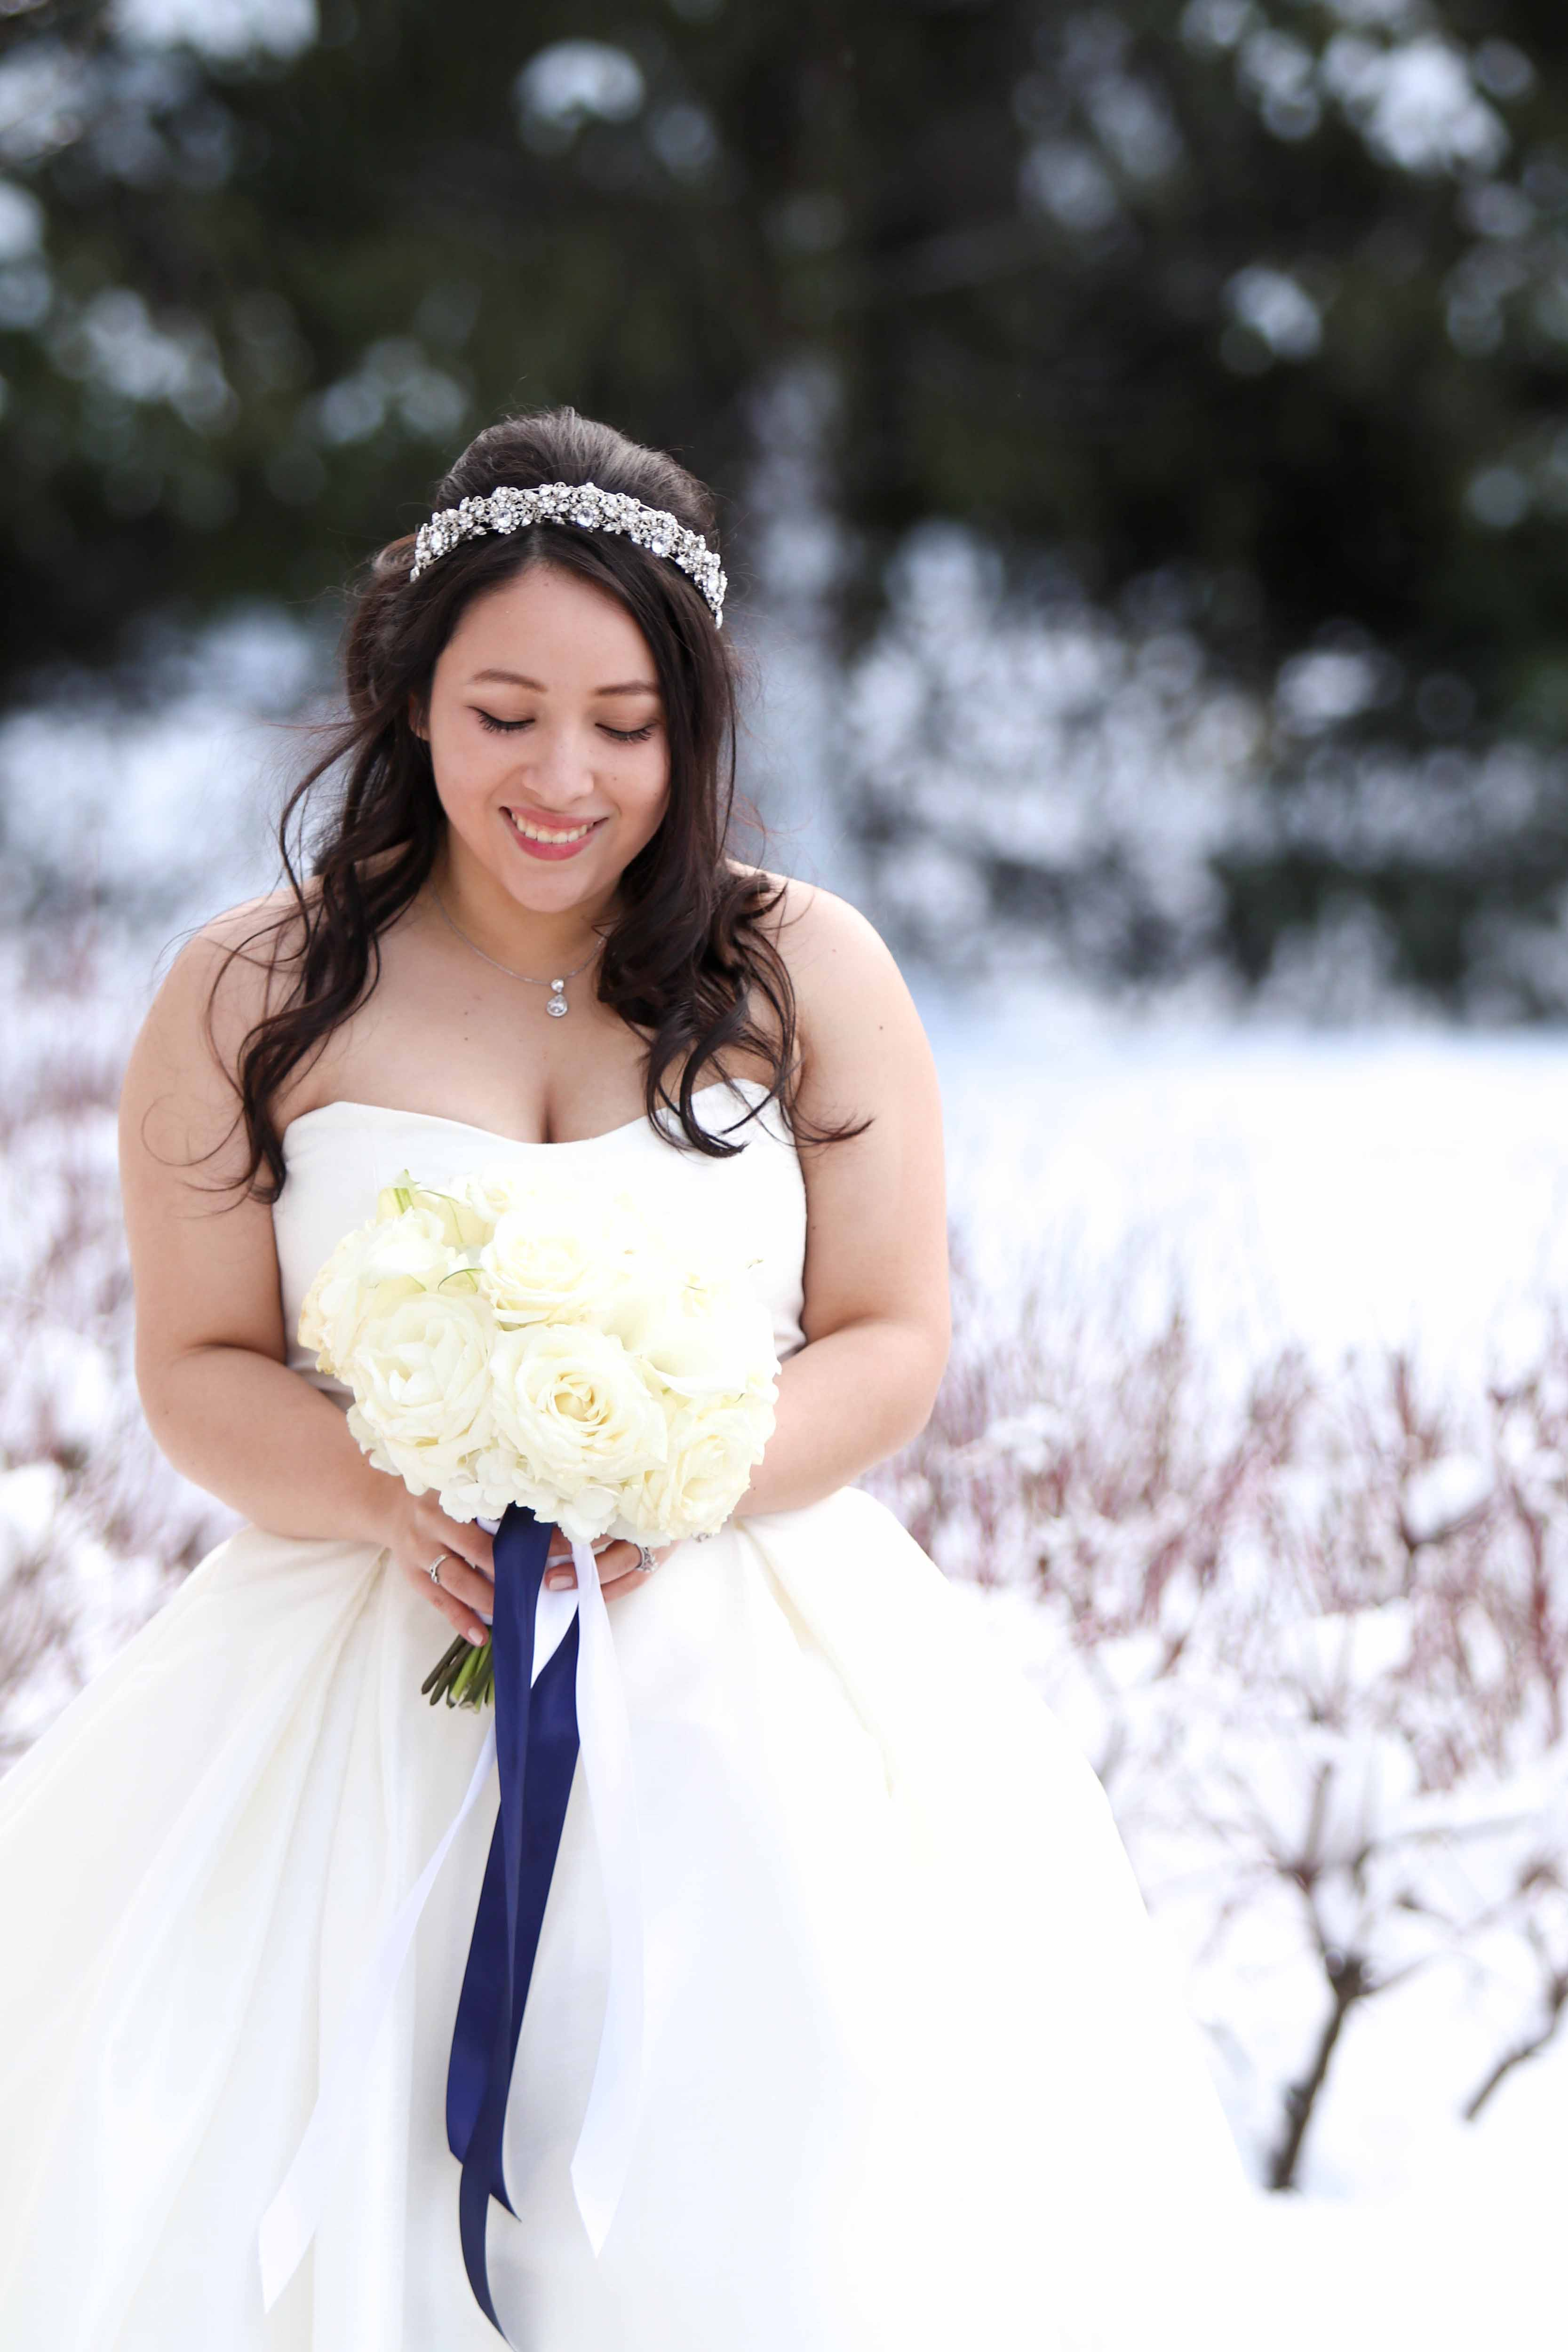 bride in white dress with white bouquet standing in snow